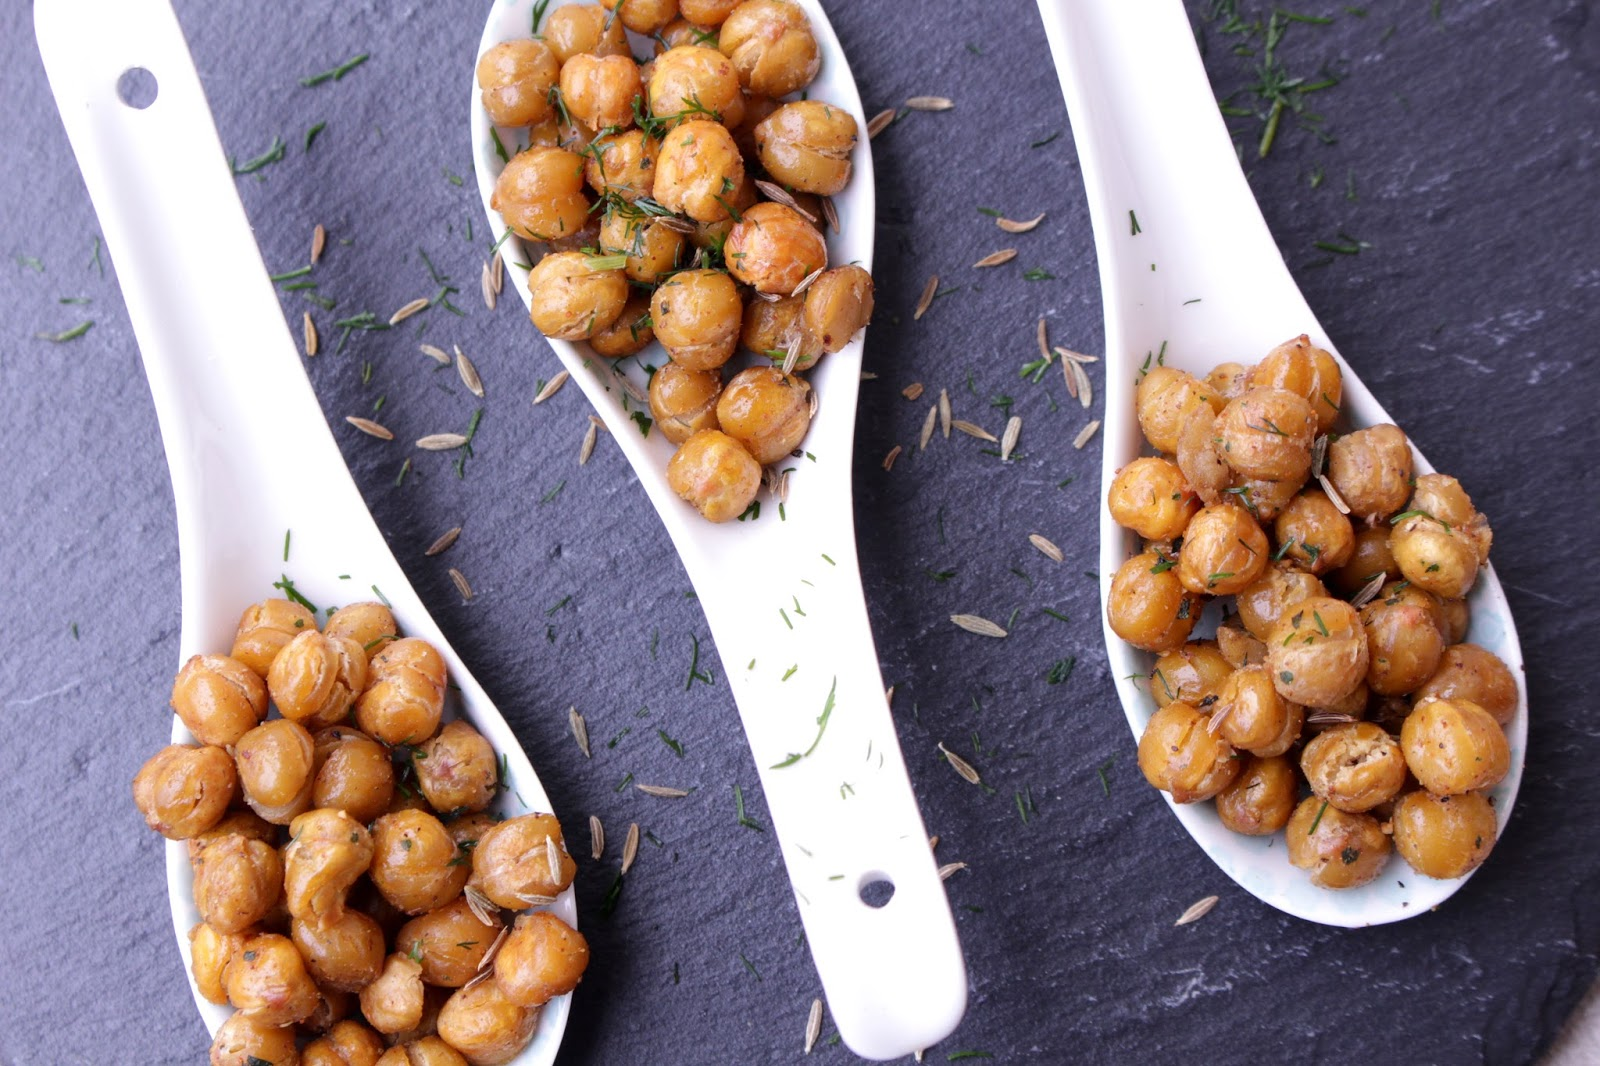 Crunchy spicy cheekpeas